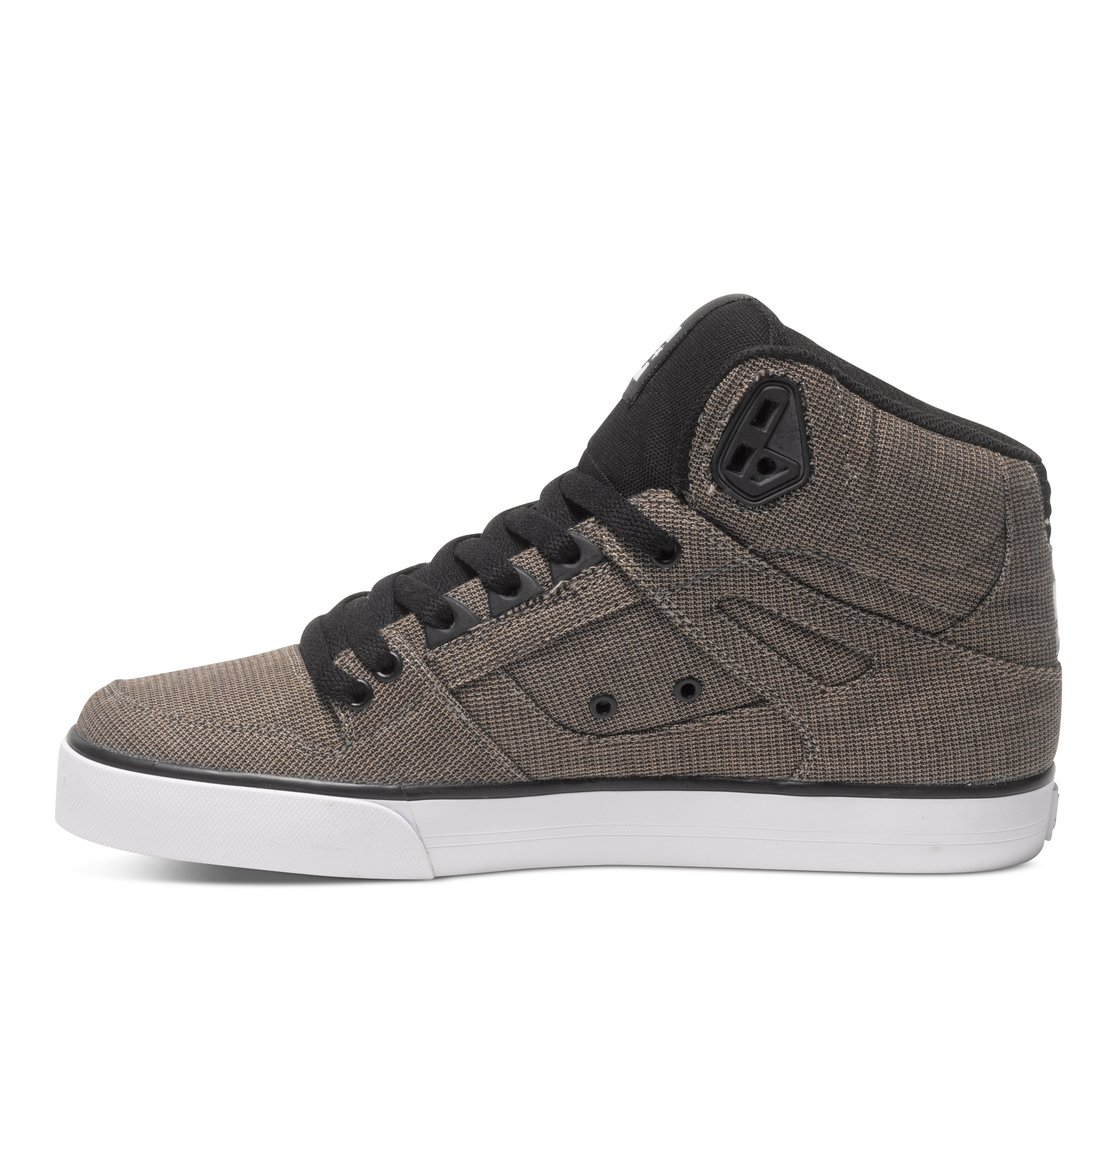 dc shoes spartan wc tx se chaussures montantes pour homme. Black Bedroom Furniture Sets. Home Design Ideas